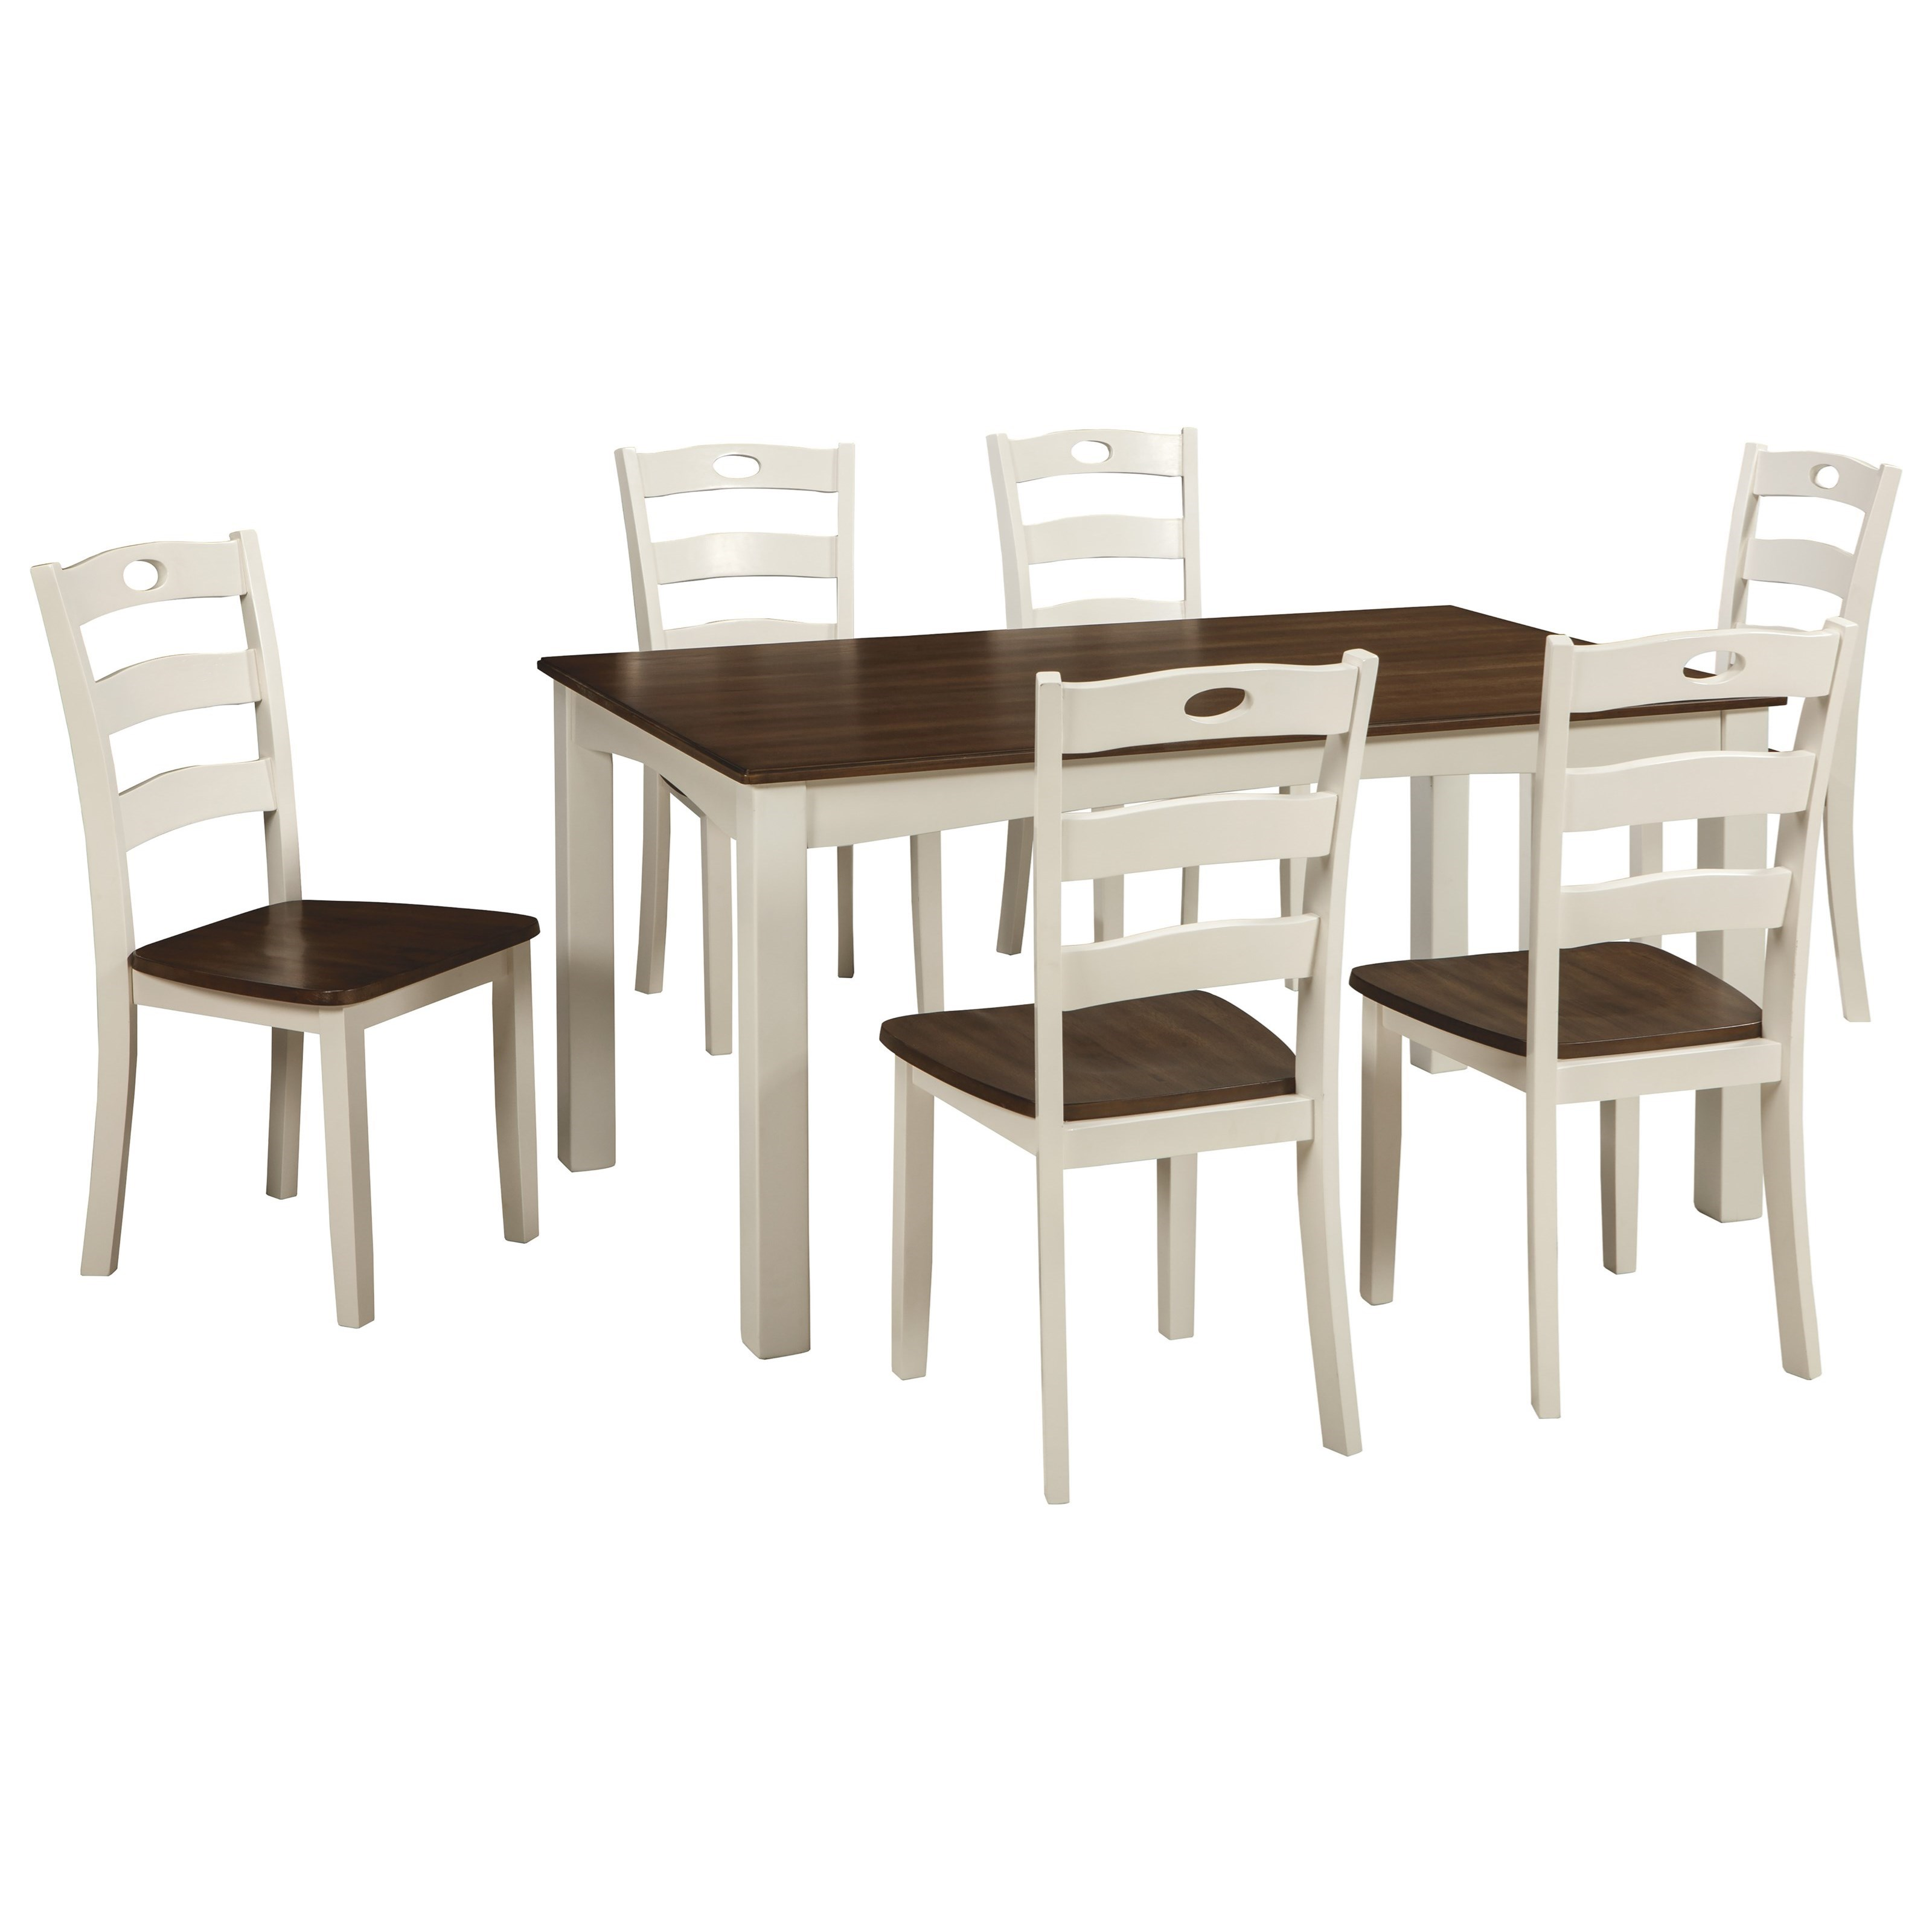 two tone finish 7 piece dining room table set by signature design by ashley wolf and gardiner. Black Bedroom Furniture Sets. Home Design Ideas